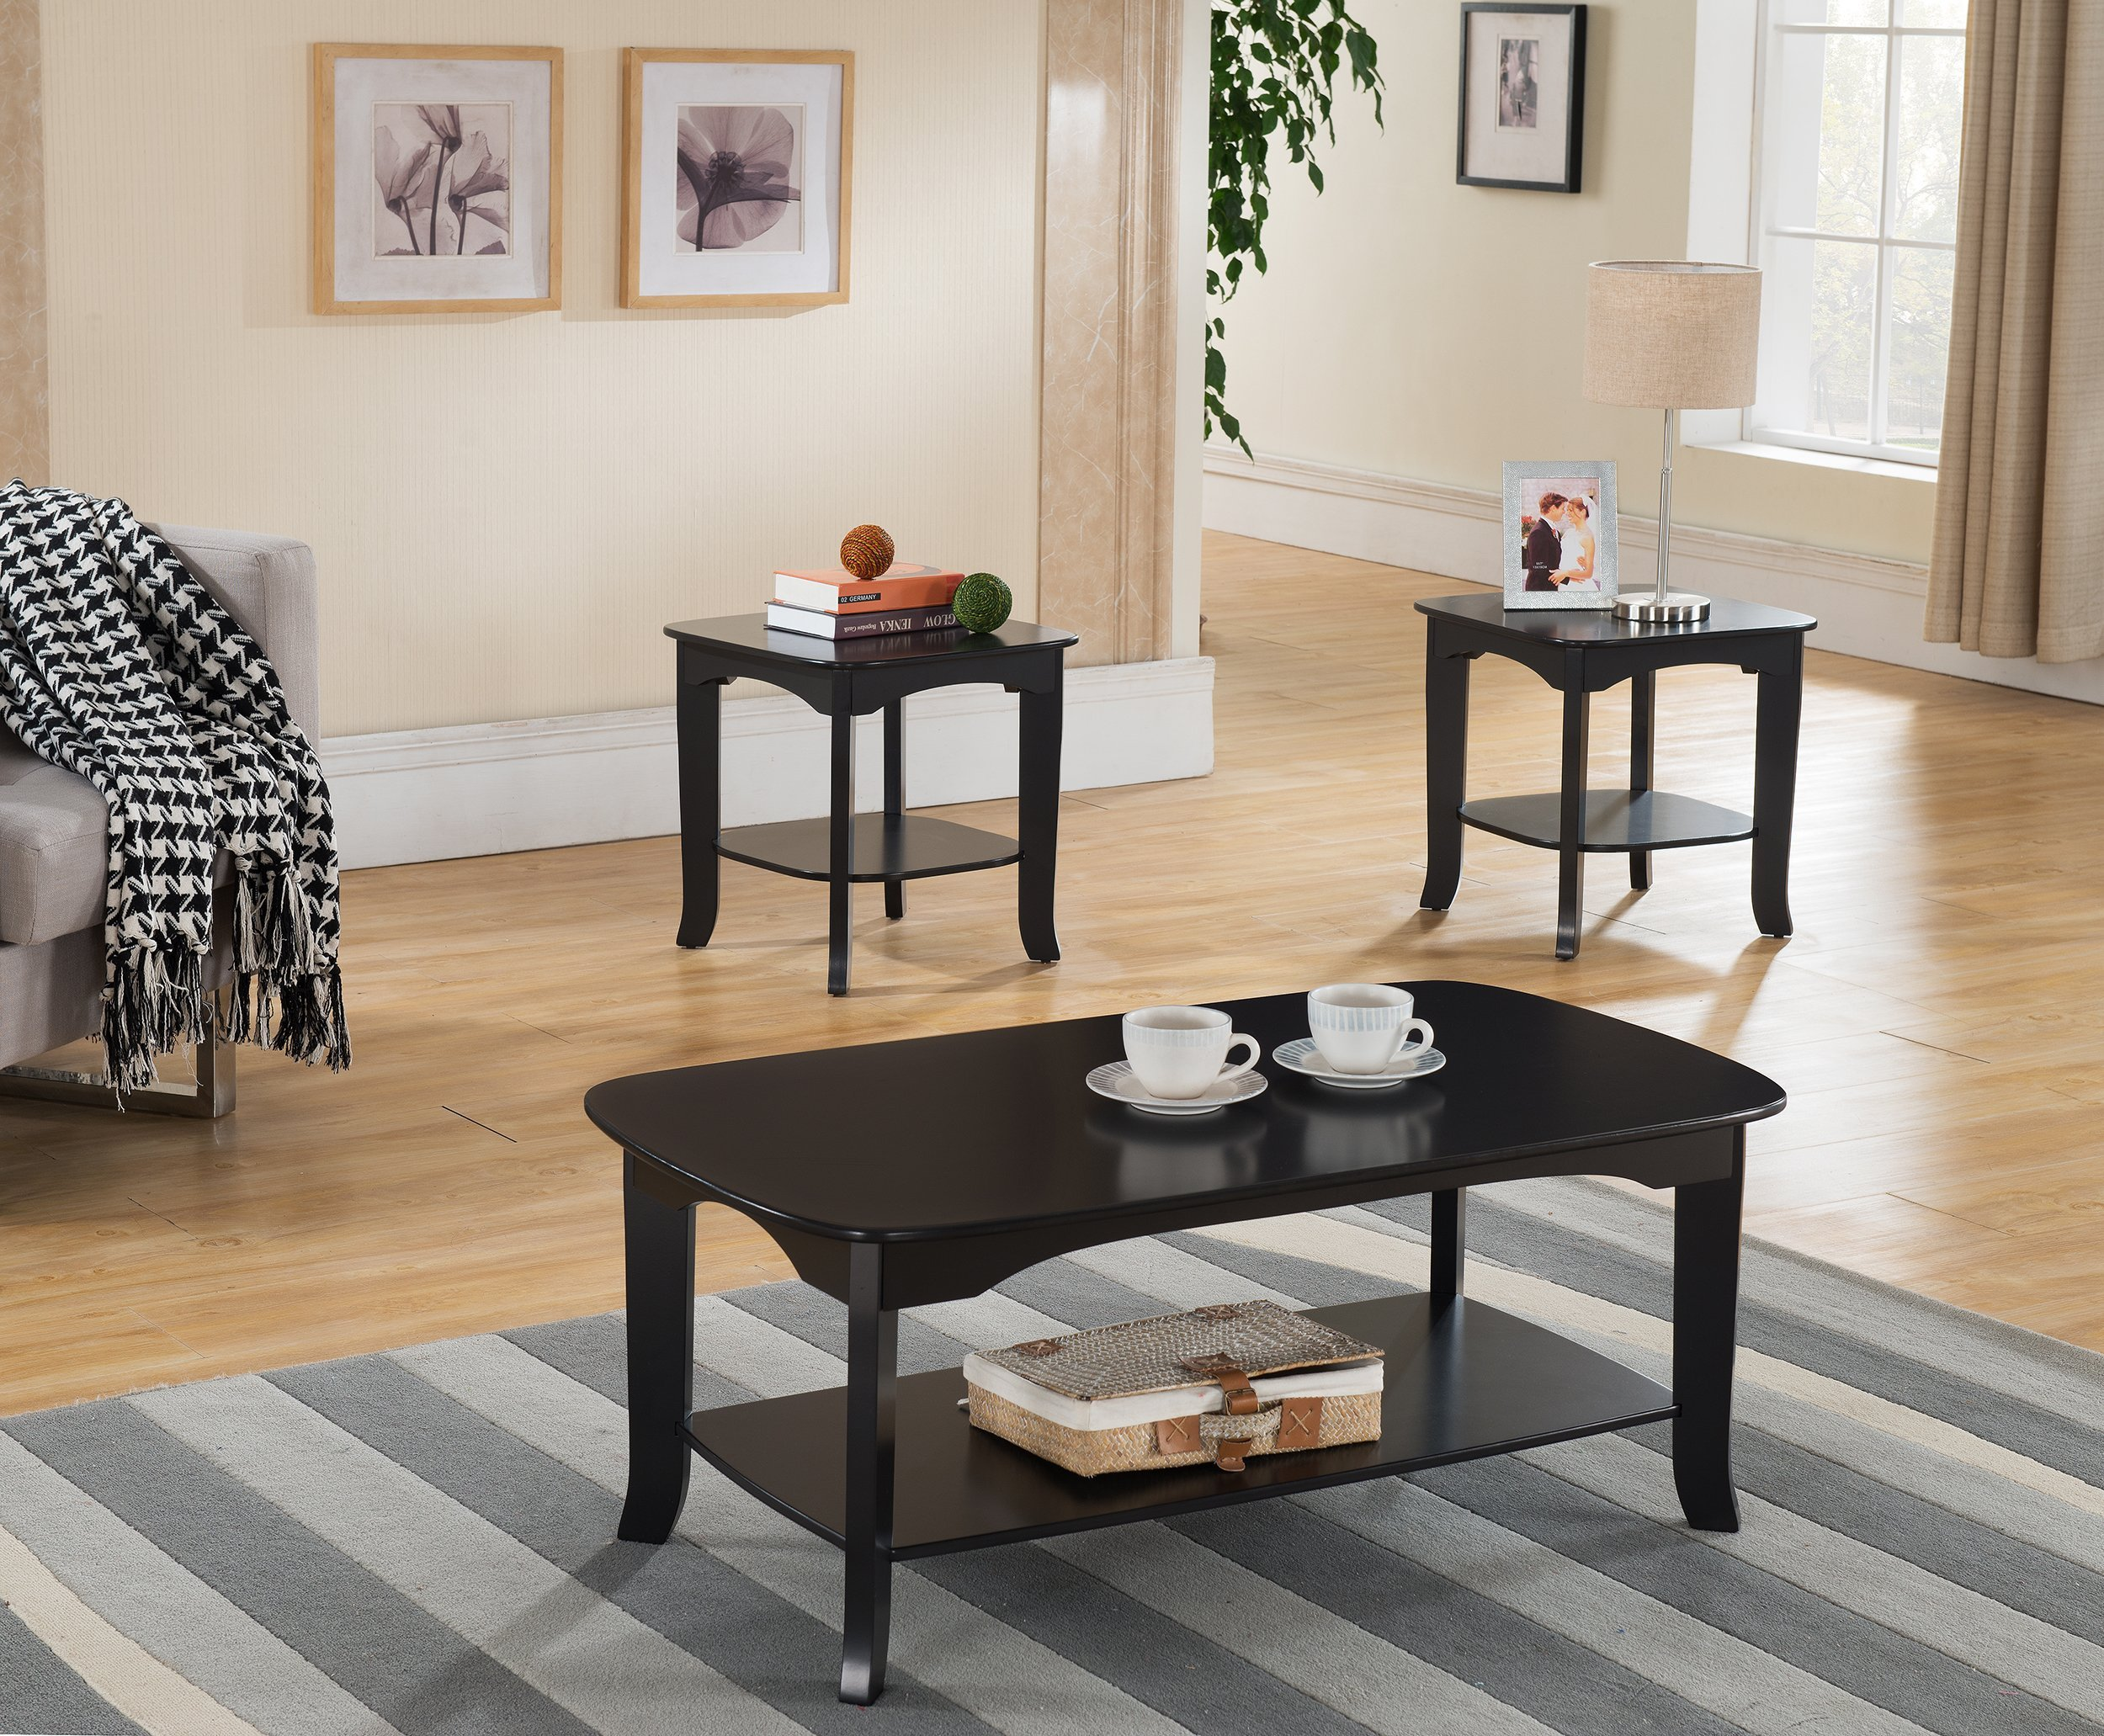 Kings Brand Furniture Kings Brand Furniture-3-Piece Espresso Occasional Set, Coffee 2 End Tables by Kings Brand Furniture